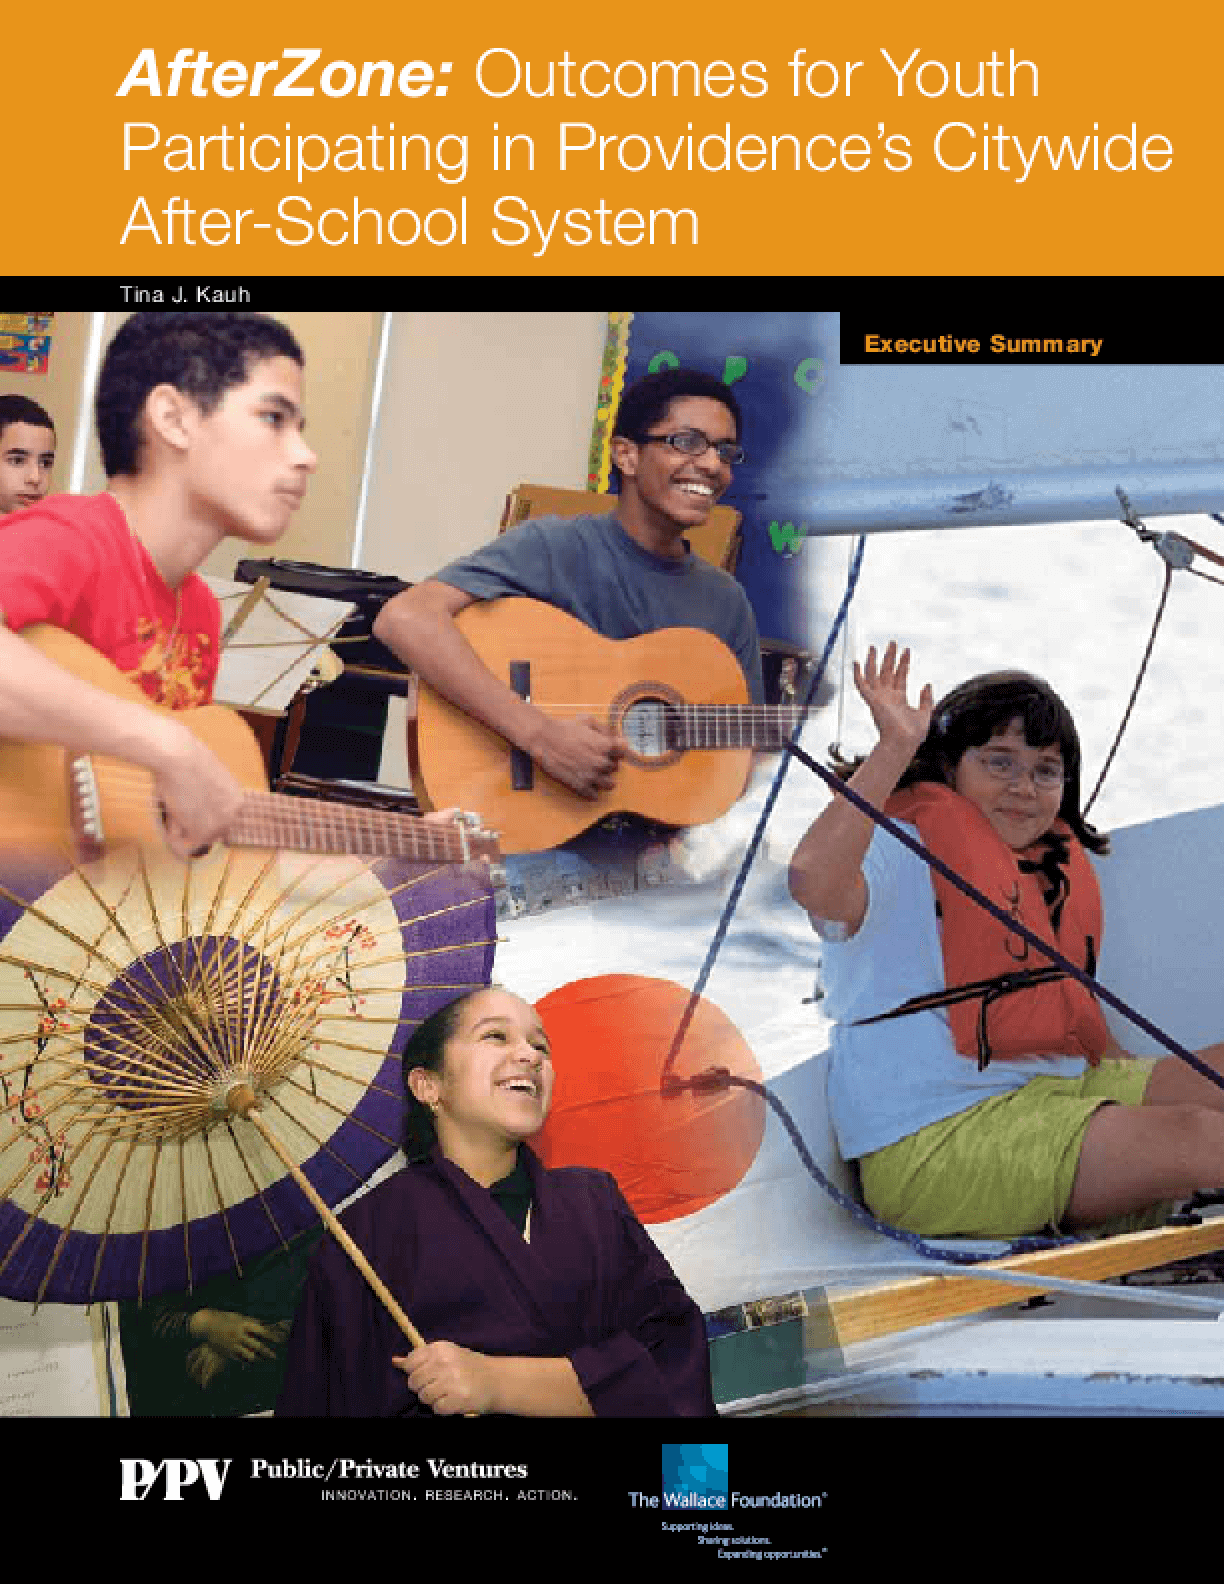 AfterZone: Outcomes for Youth Participating in Providence's Citywide After-School System, Executive Summary